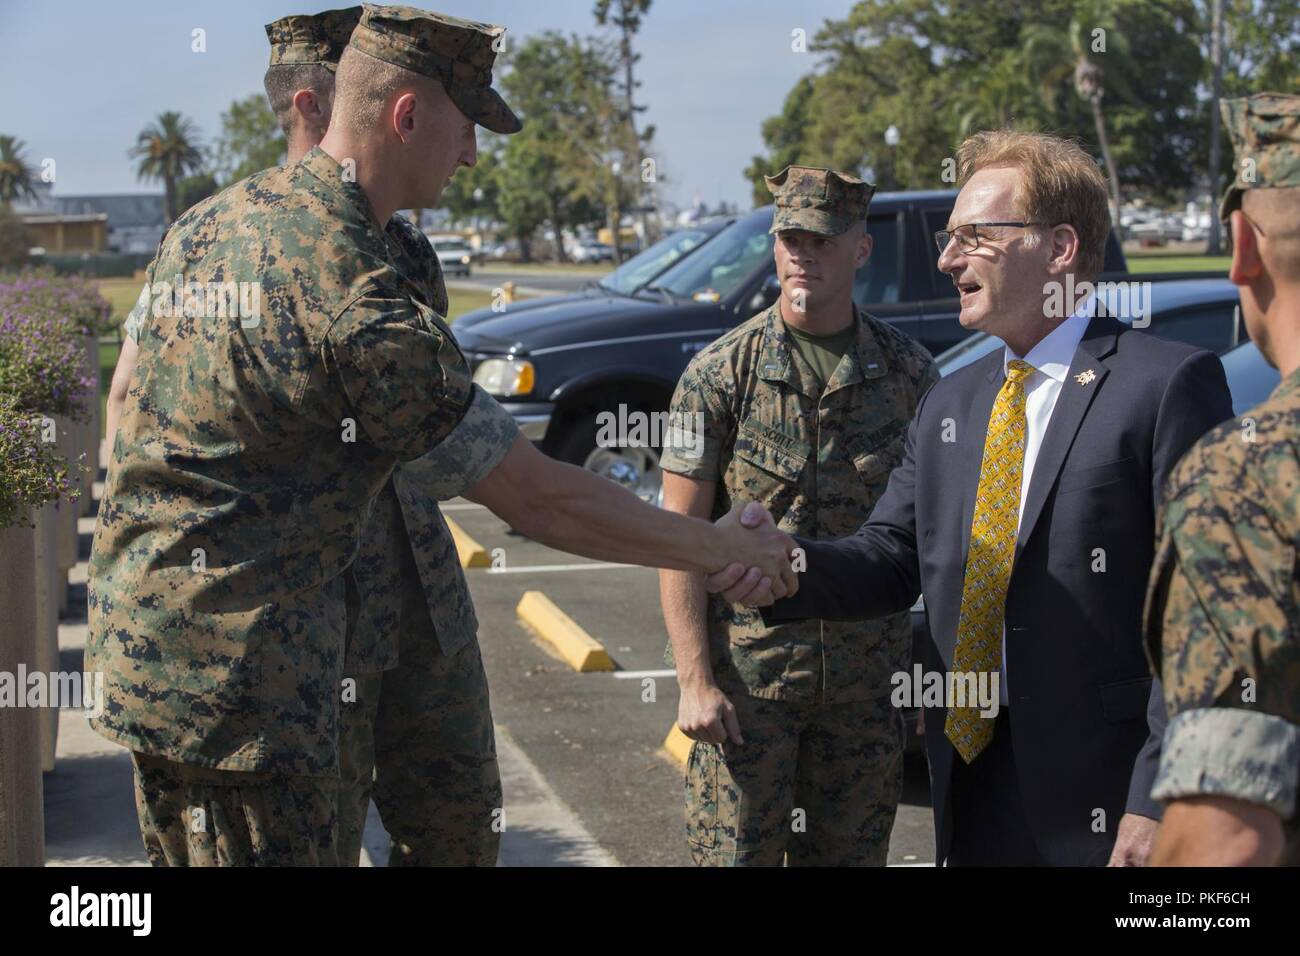 Marines from Marine Corps Recruit Depot San Diego, welcome